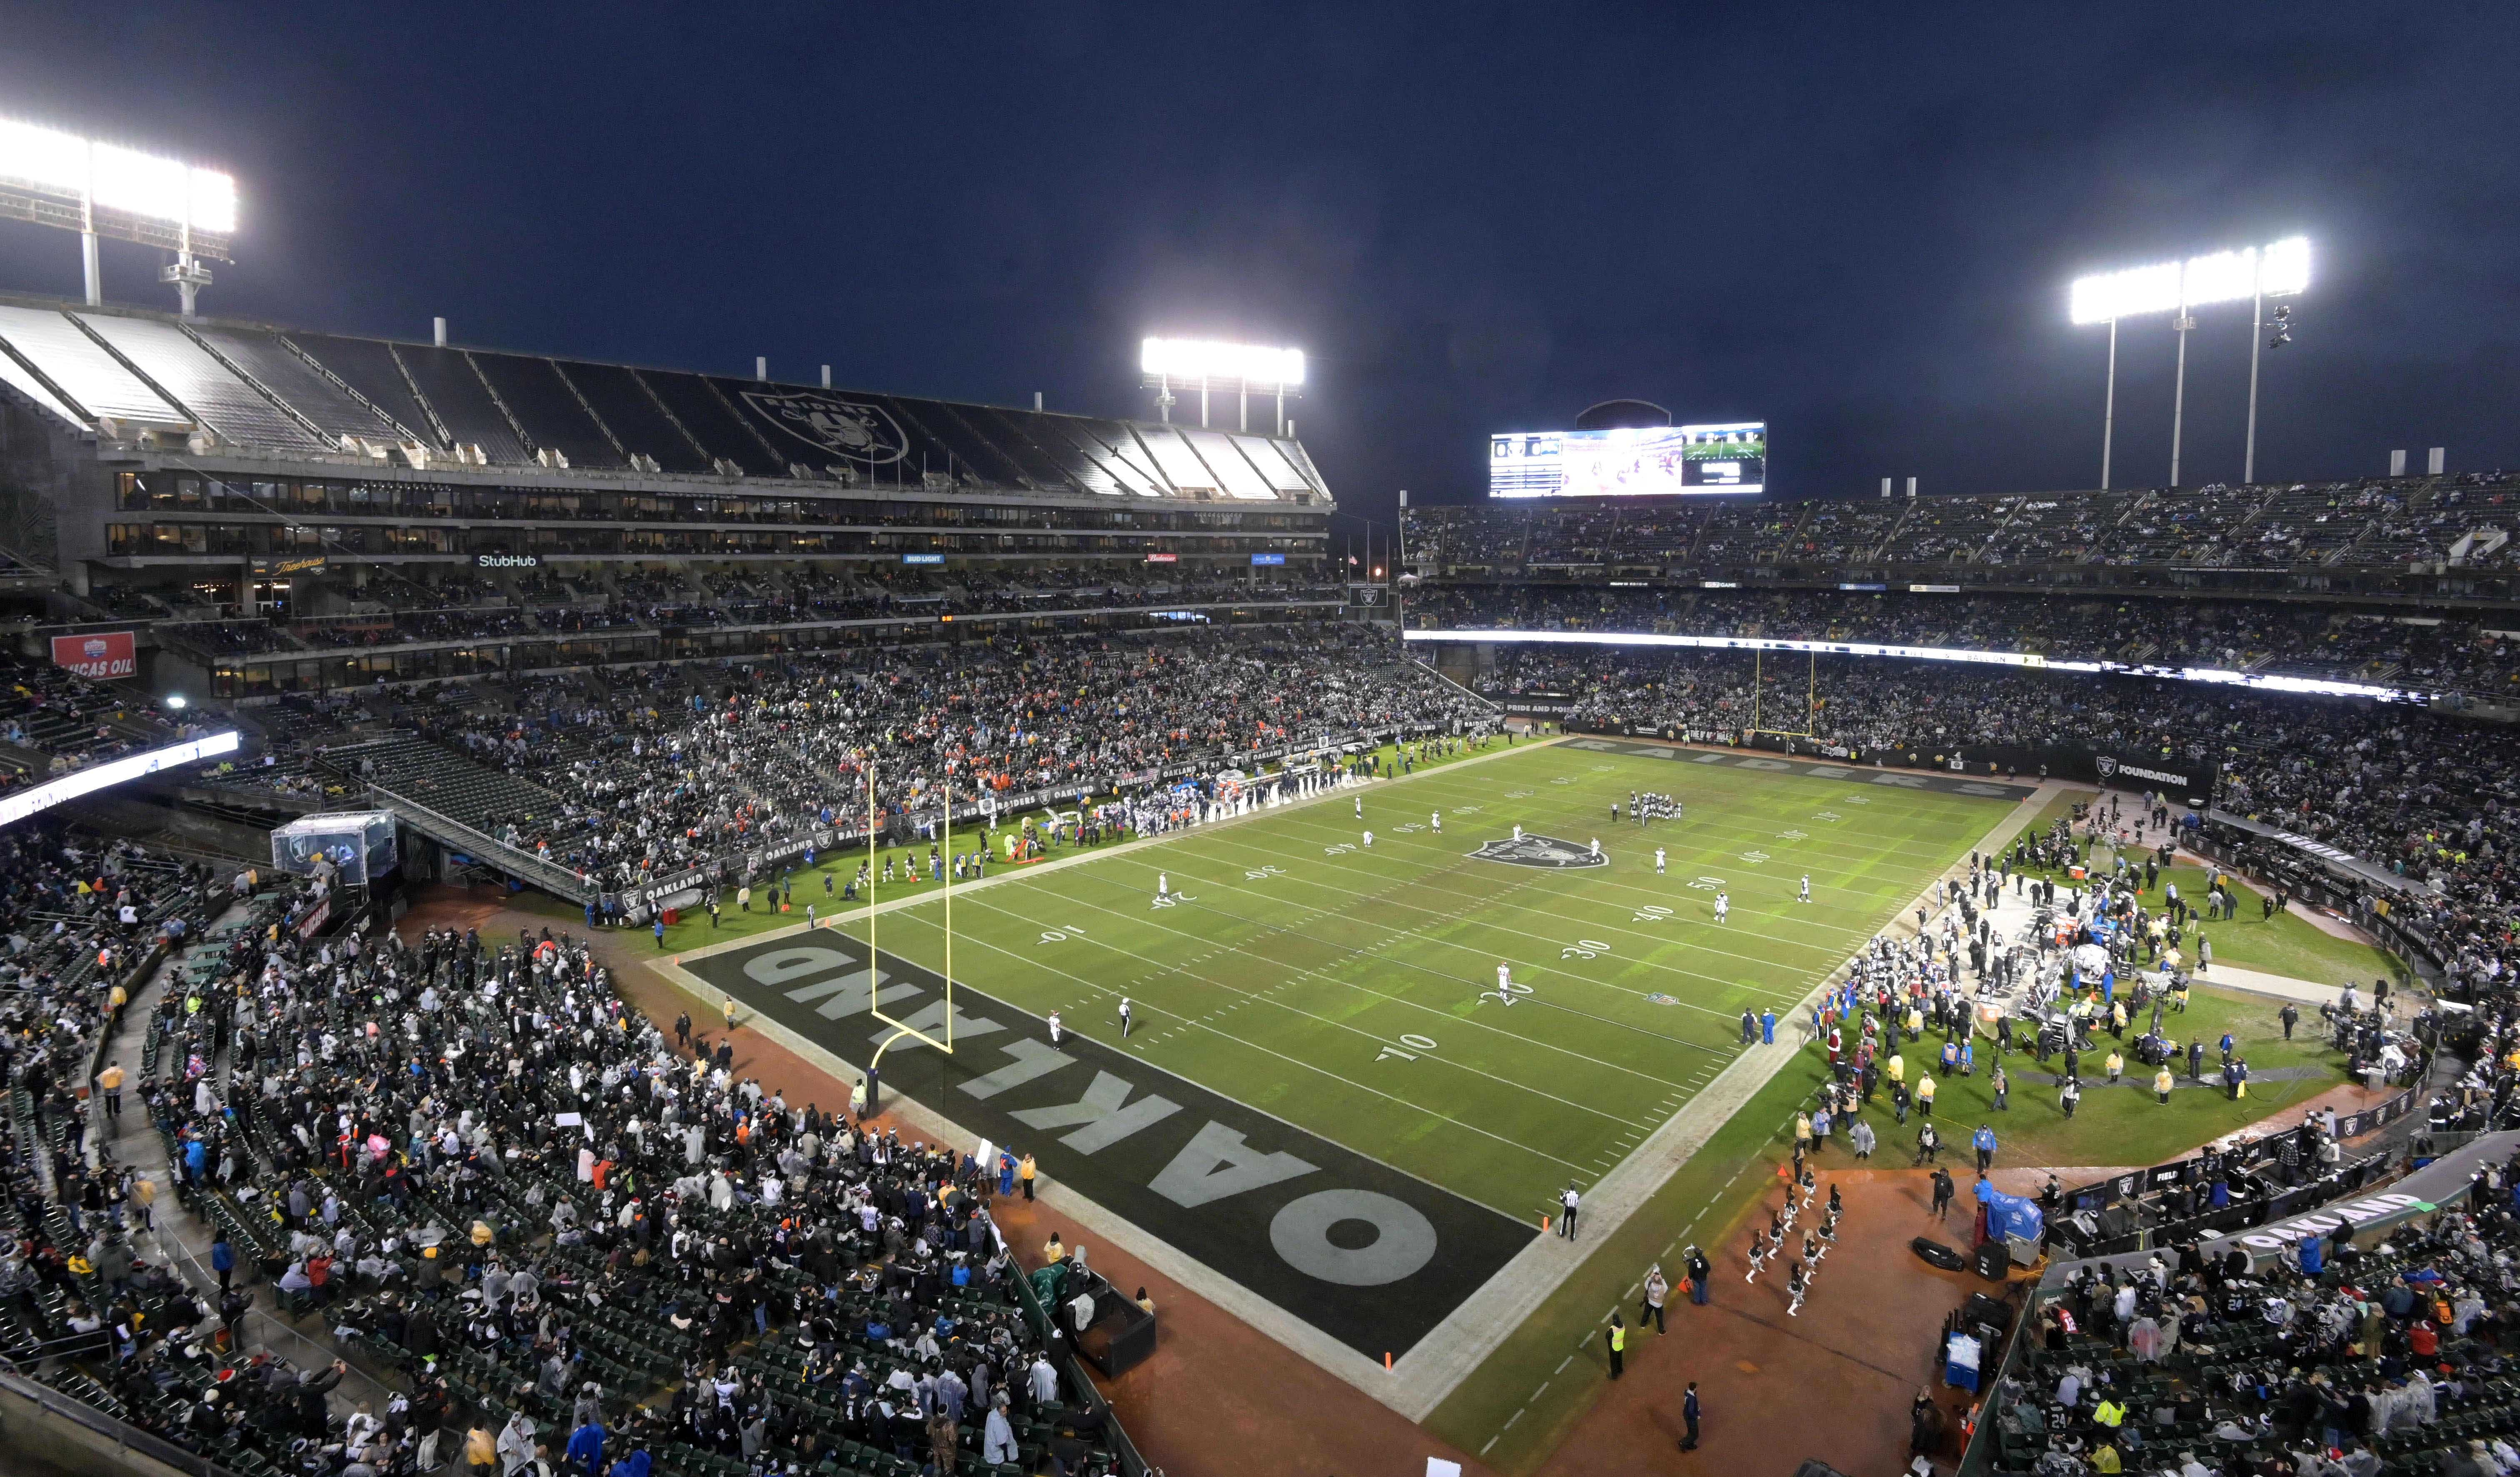 The Raiders have been playing at the Oakland-Alameda County Coliseum since relocating back to the city in 1995.